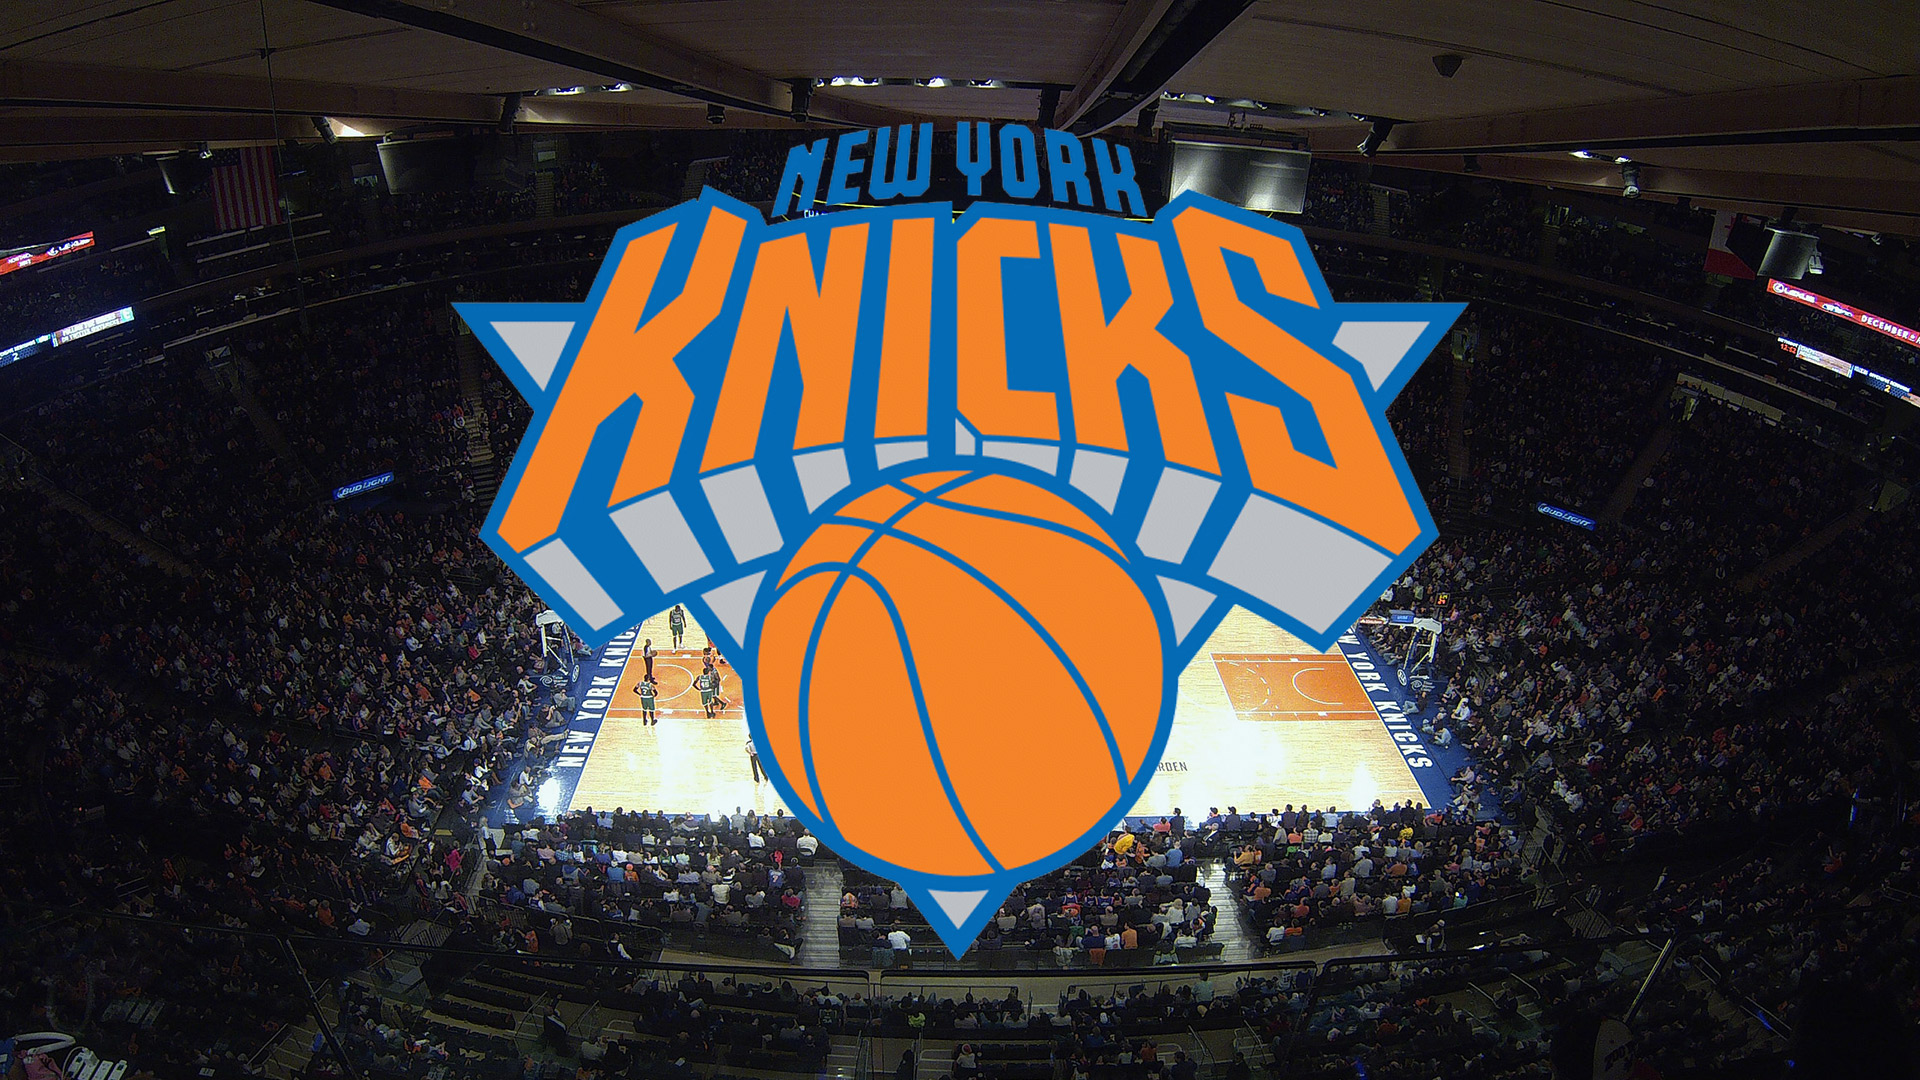 Get the latest New York Knicks news scores stats standings rumors and more from ESPN